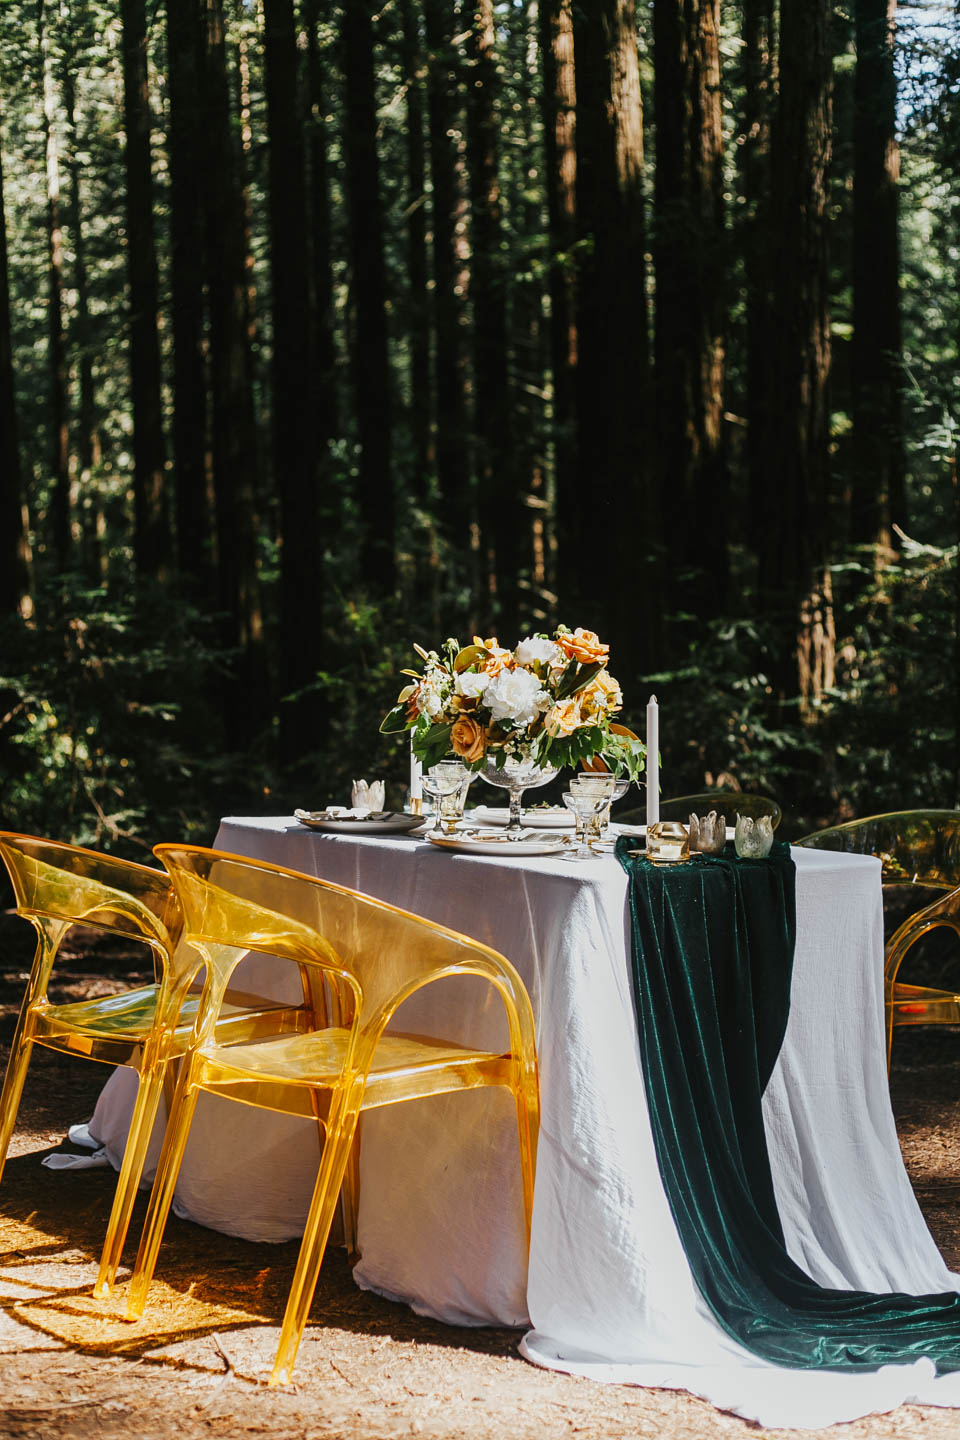 RedWoods_Styled_May2-61-2.jpg